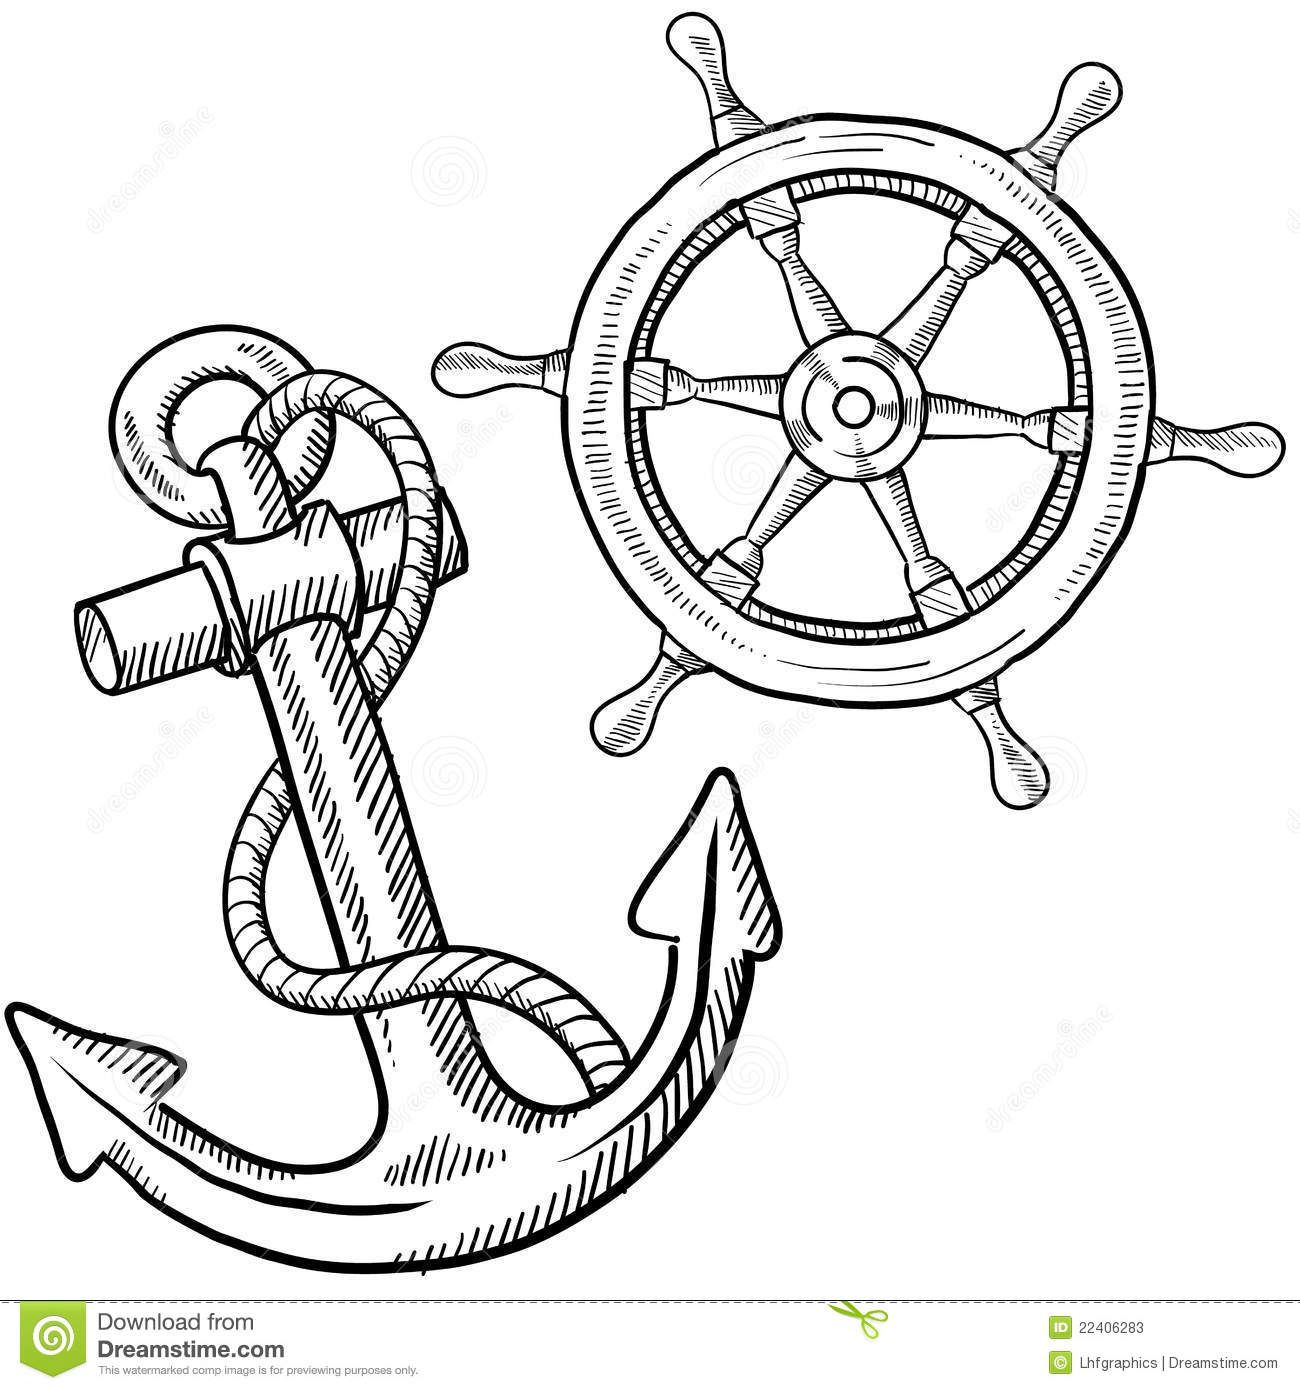 Doodle Style Ships Anchor And Wheel Illustration In Vector